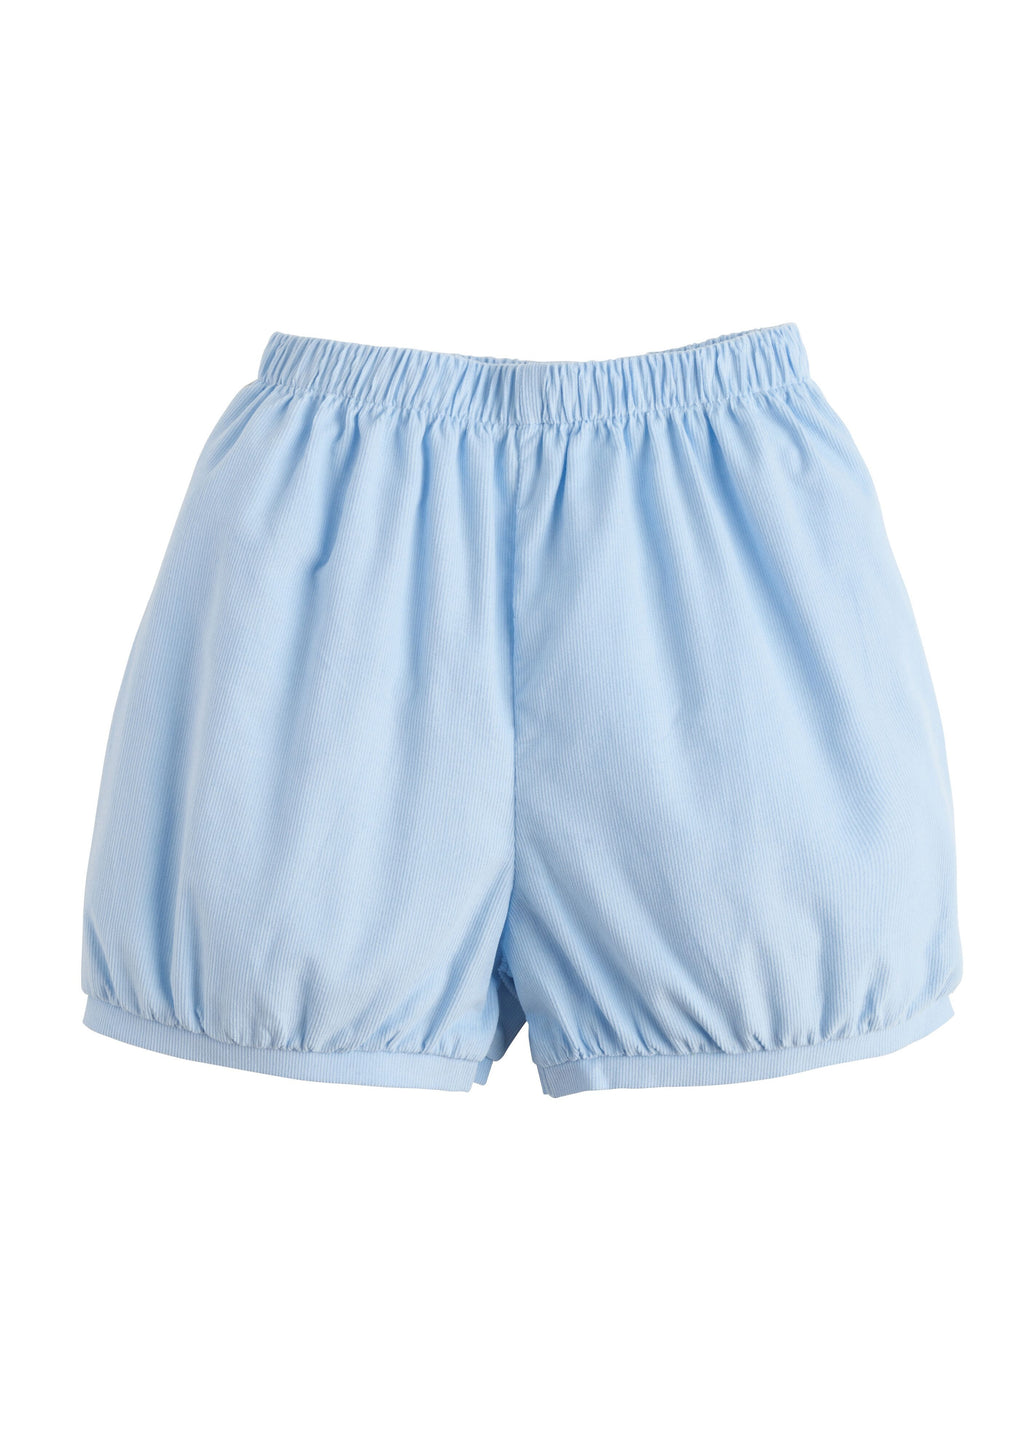 Banded Shorts - Light Blue - Born Childrens Boutique